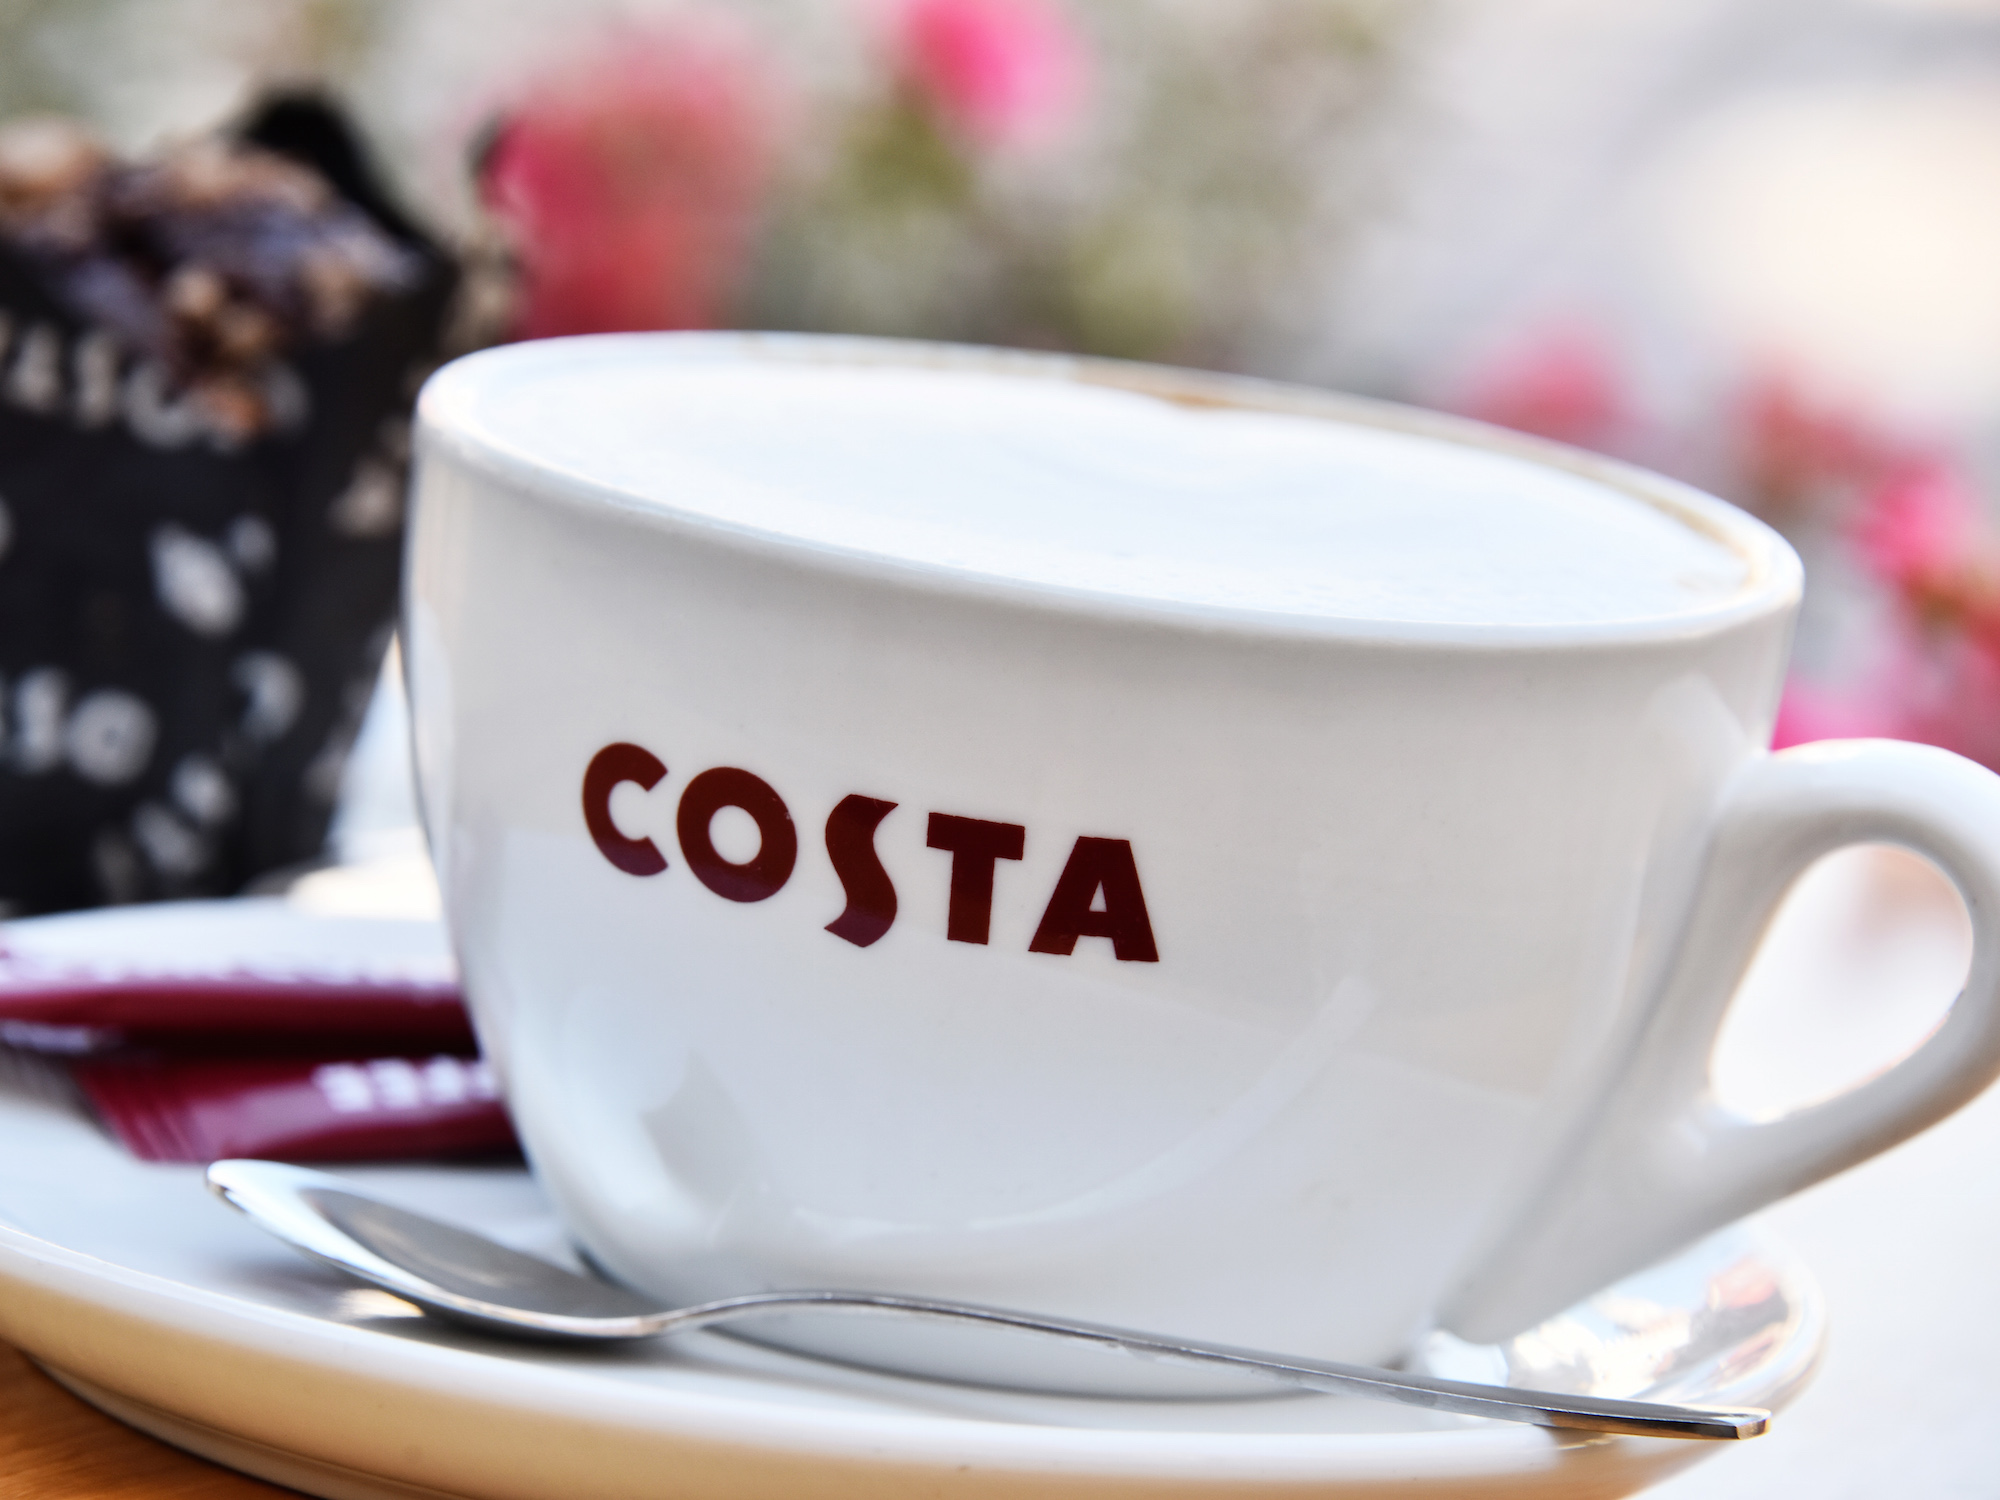 costa-coffee-flat-black.jpg